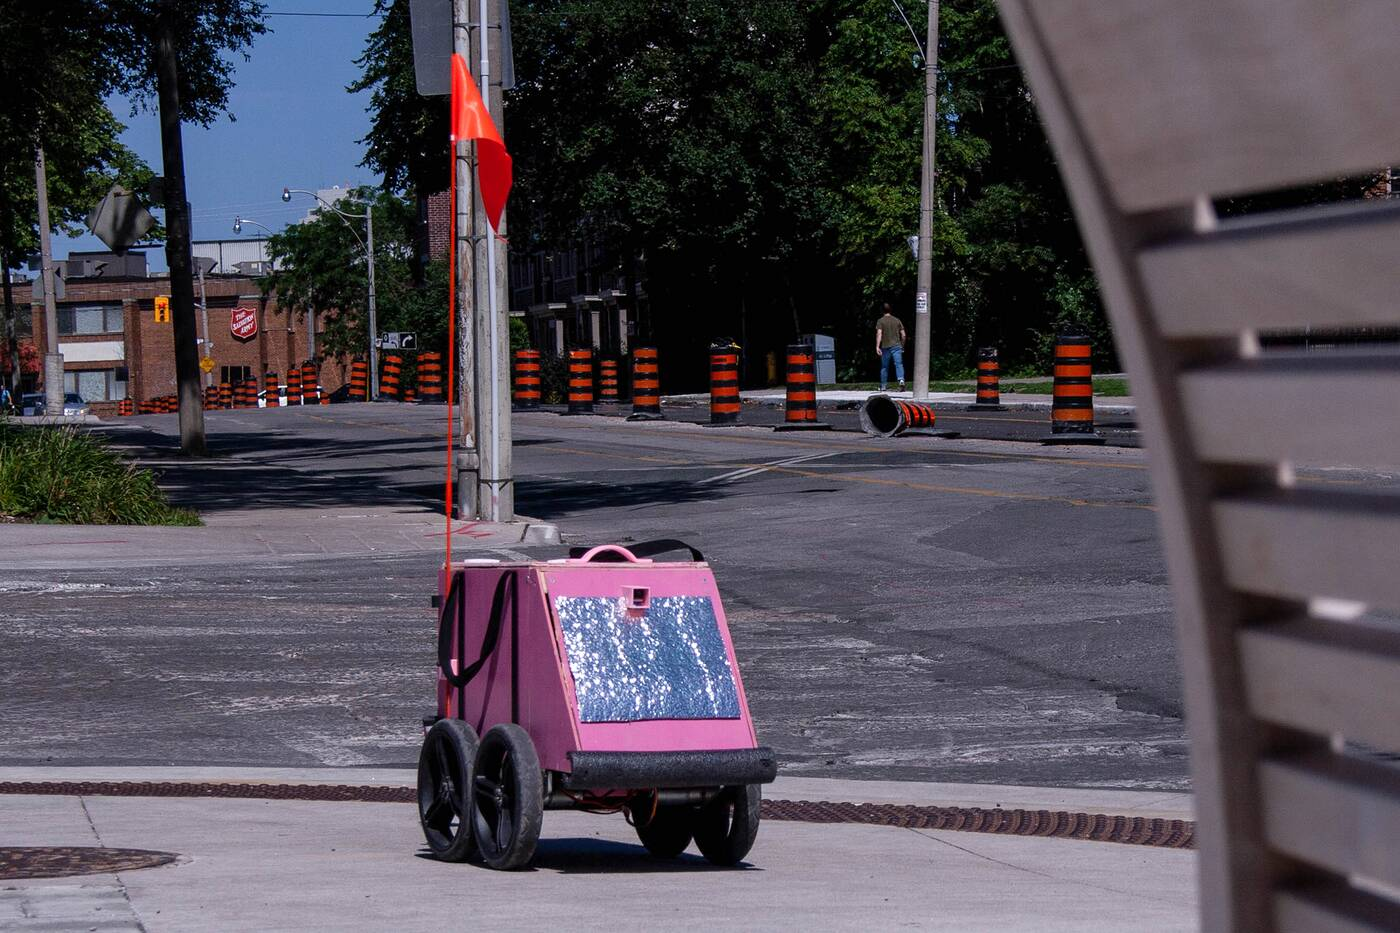 geoffrey the delivery robot